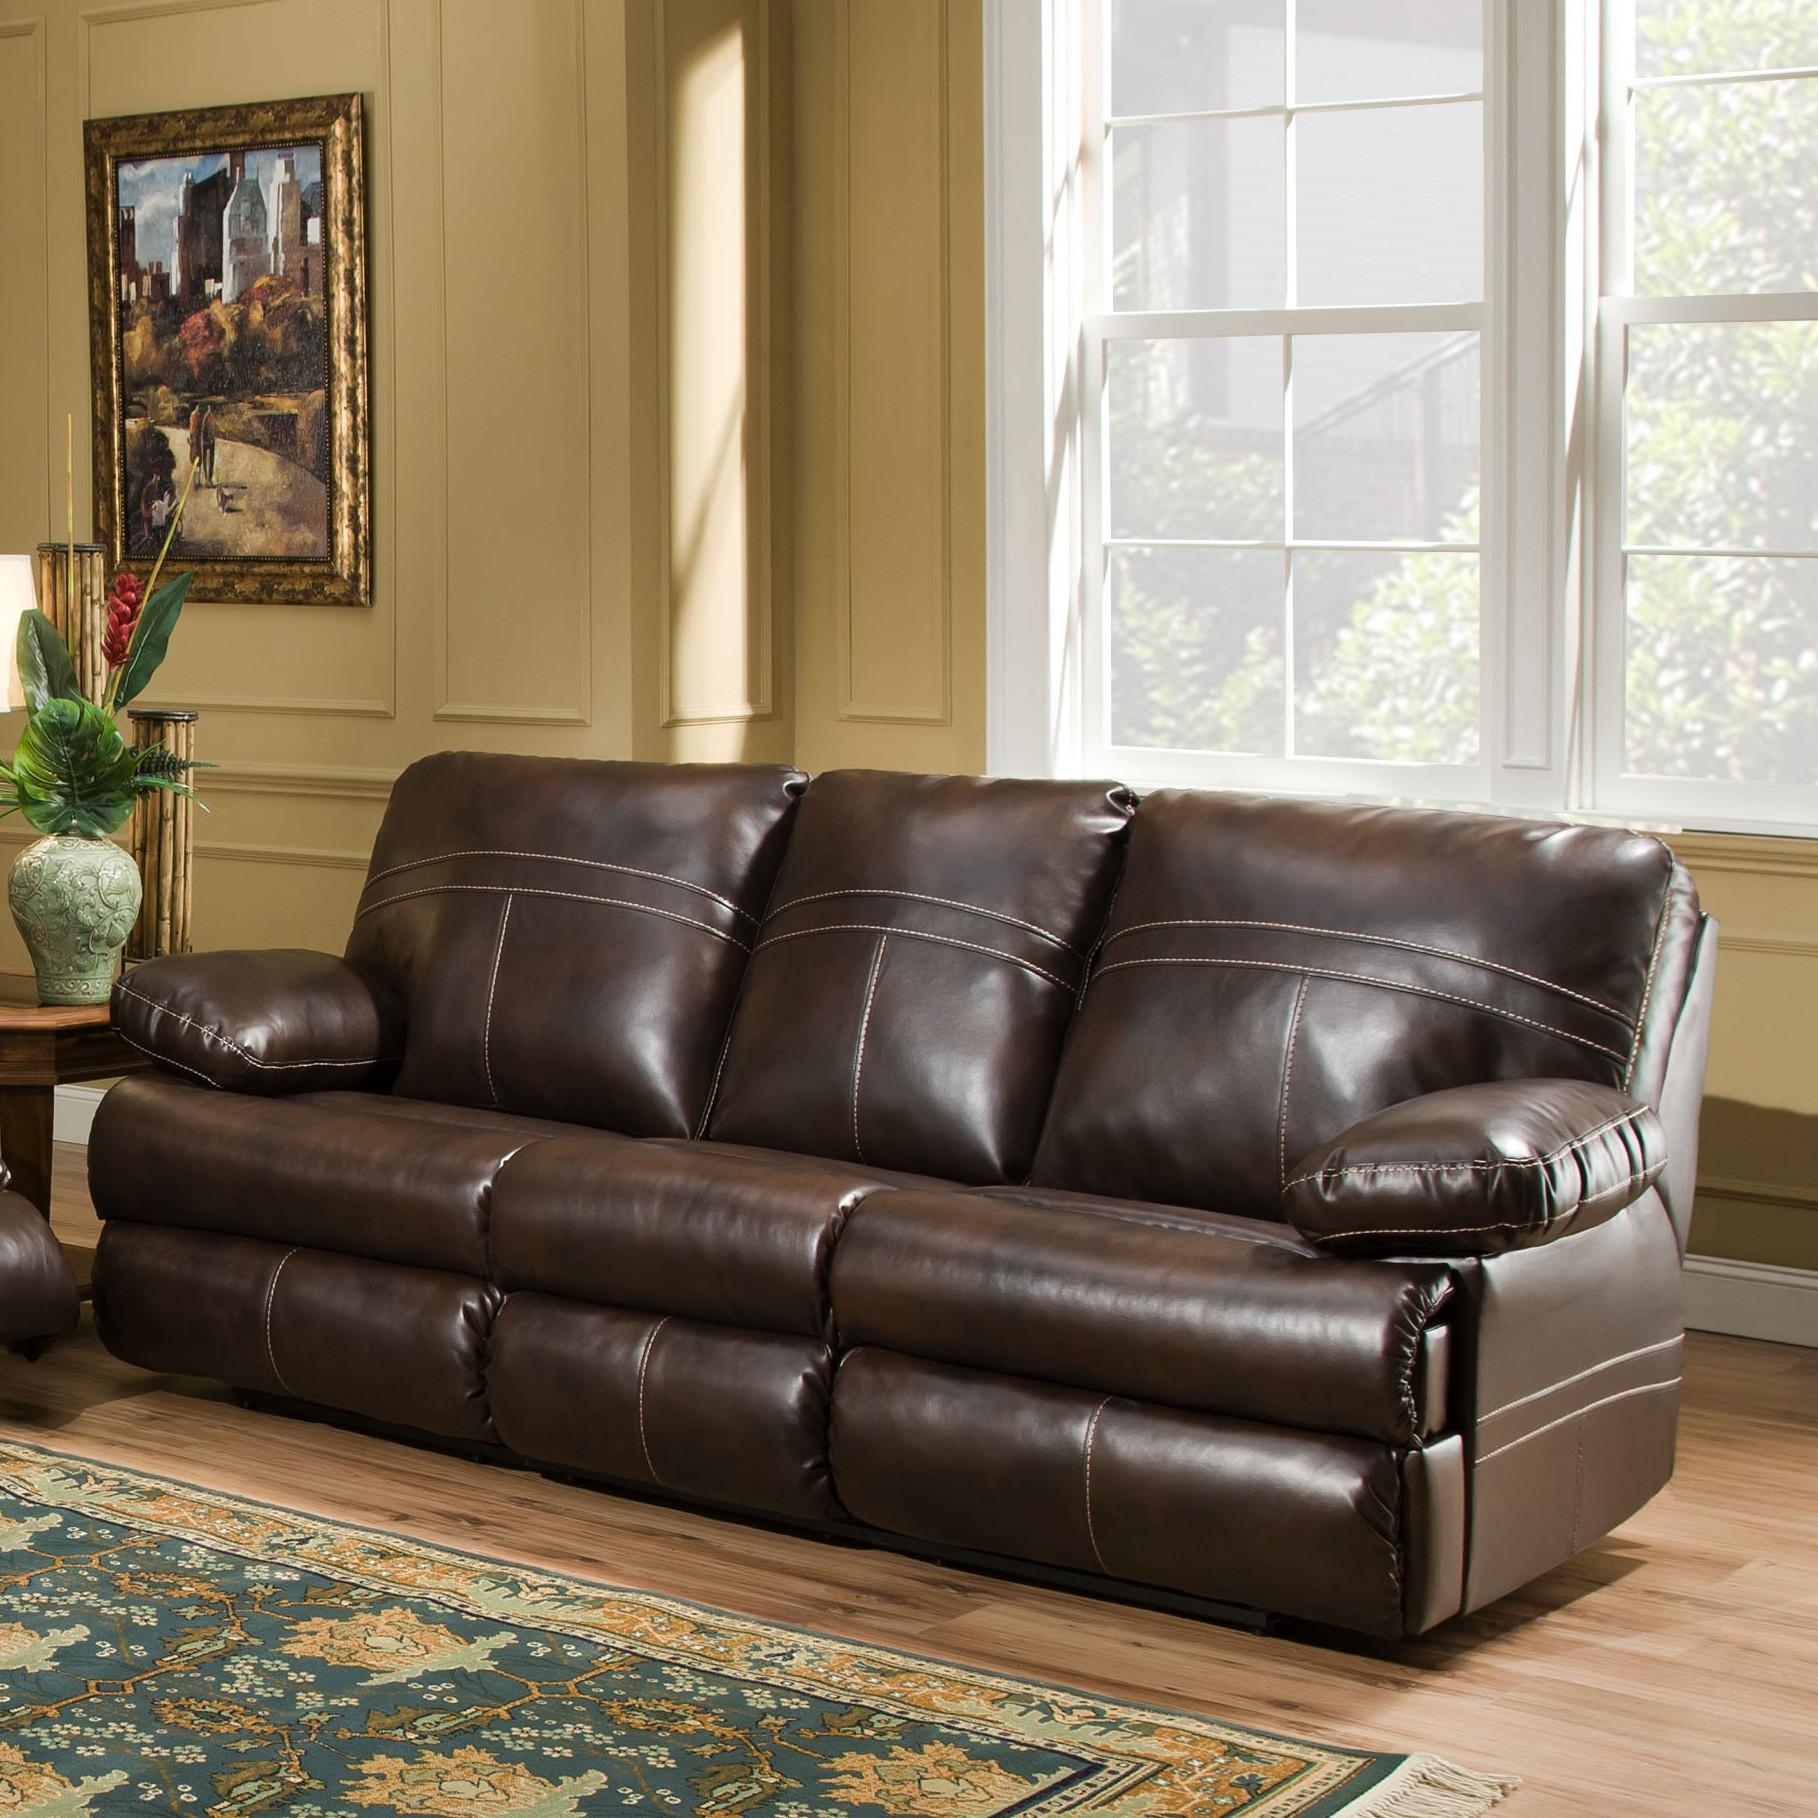 Furniture: Simmons Sectional For Comfortable Seating — Threestems Intended For Big Lots Simmons Furniture (Image 6 of 20)